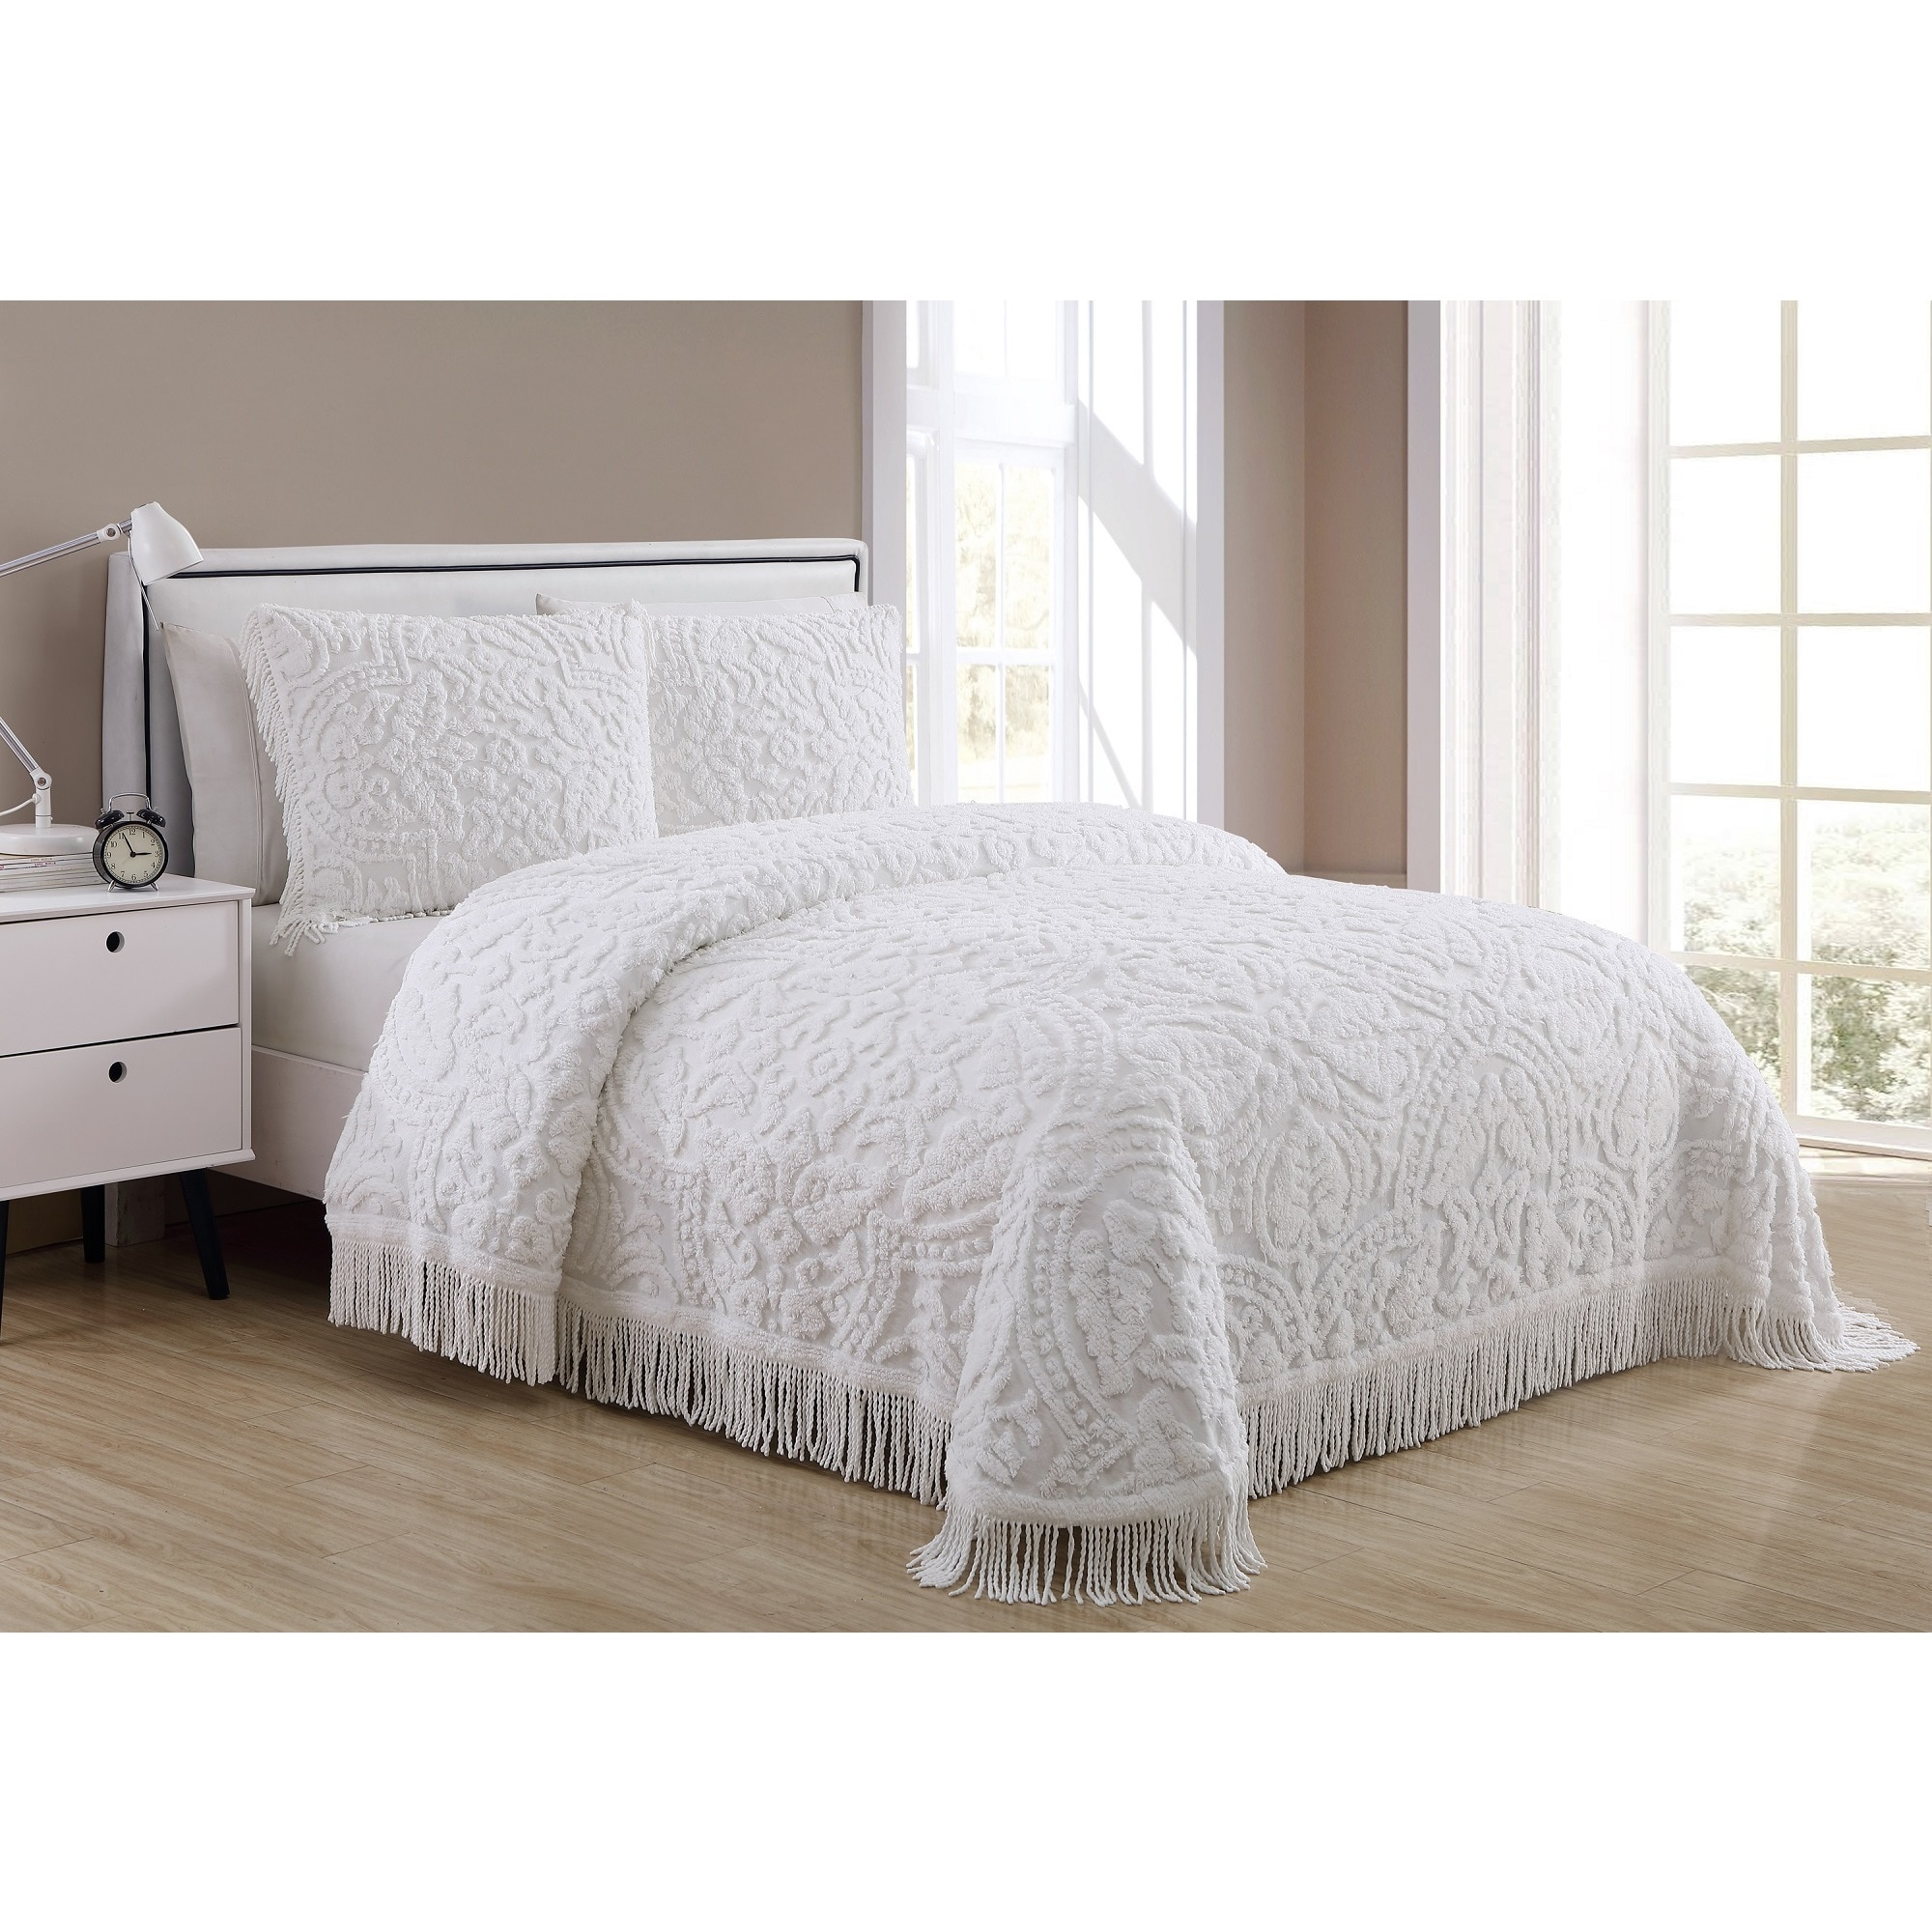 full round new comforter york carmella queen category set pillows j tufted furniture upclose boudoir